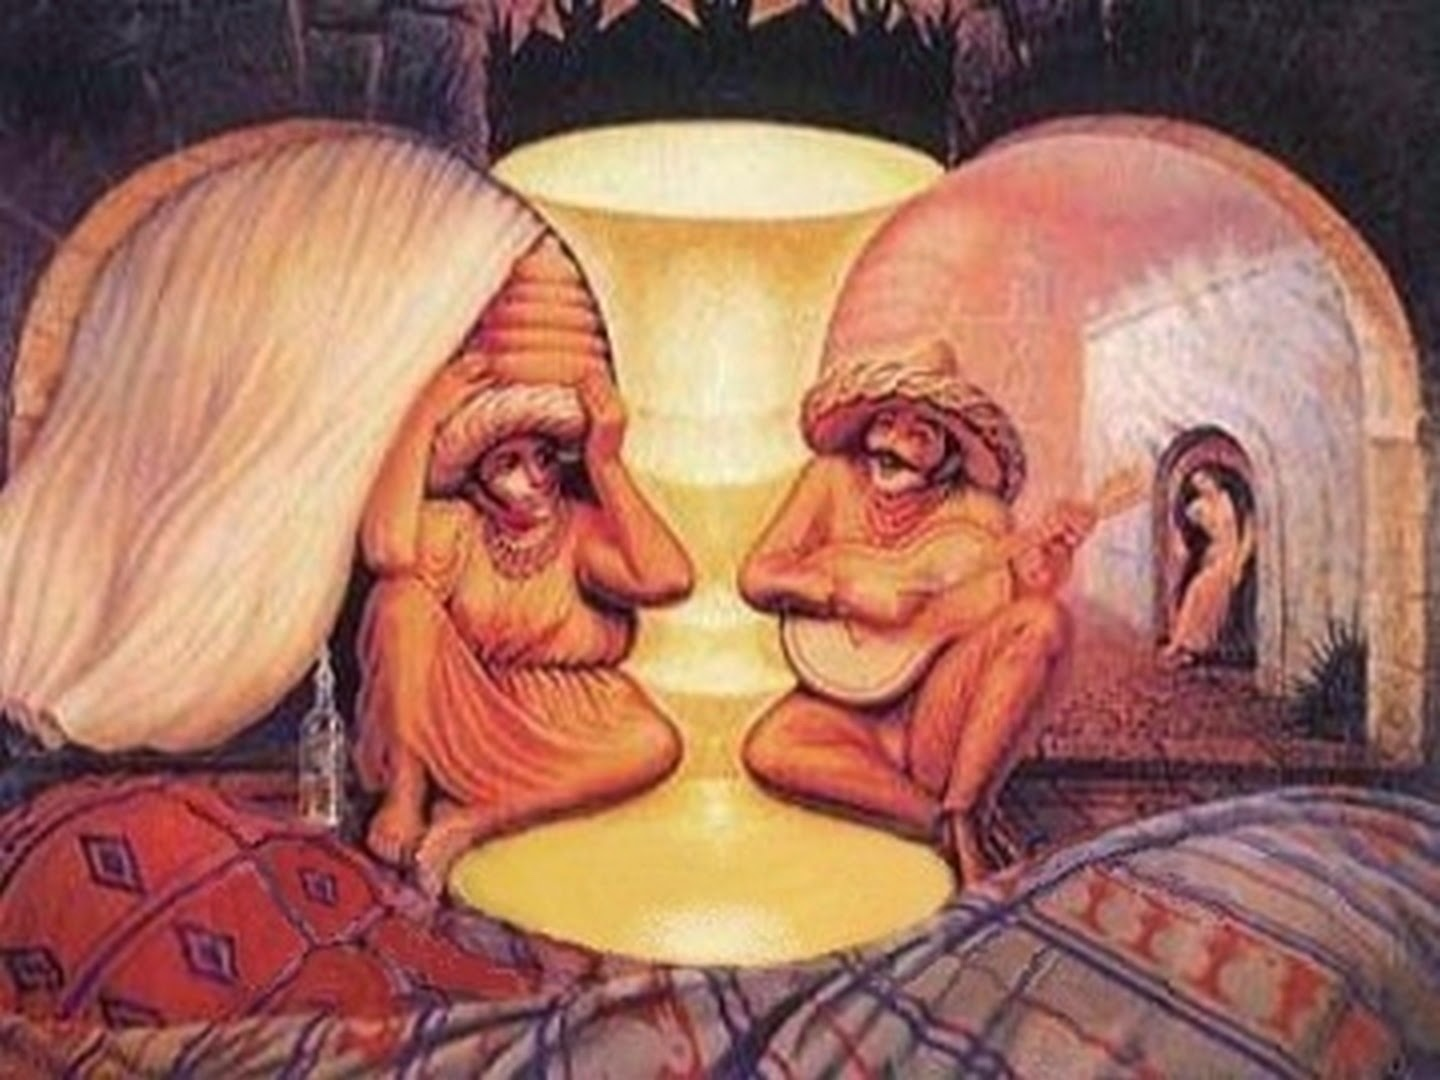 Old couple or musician dali